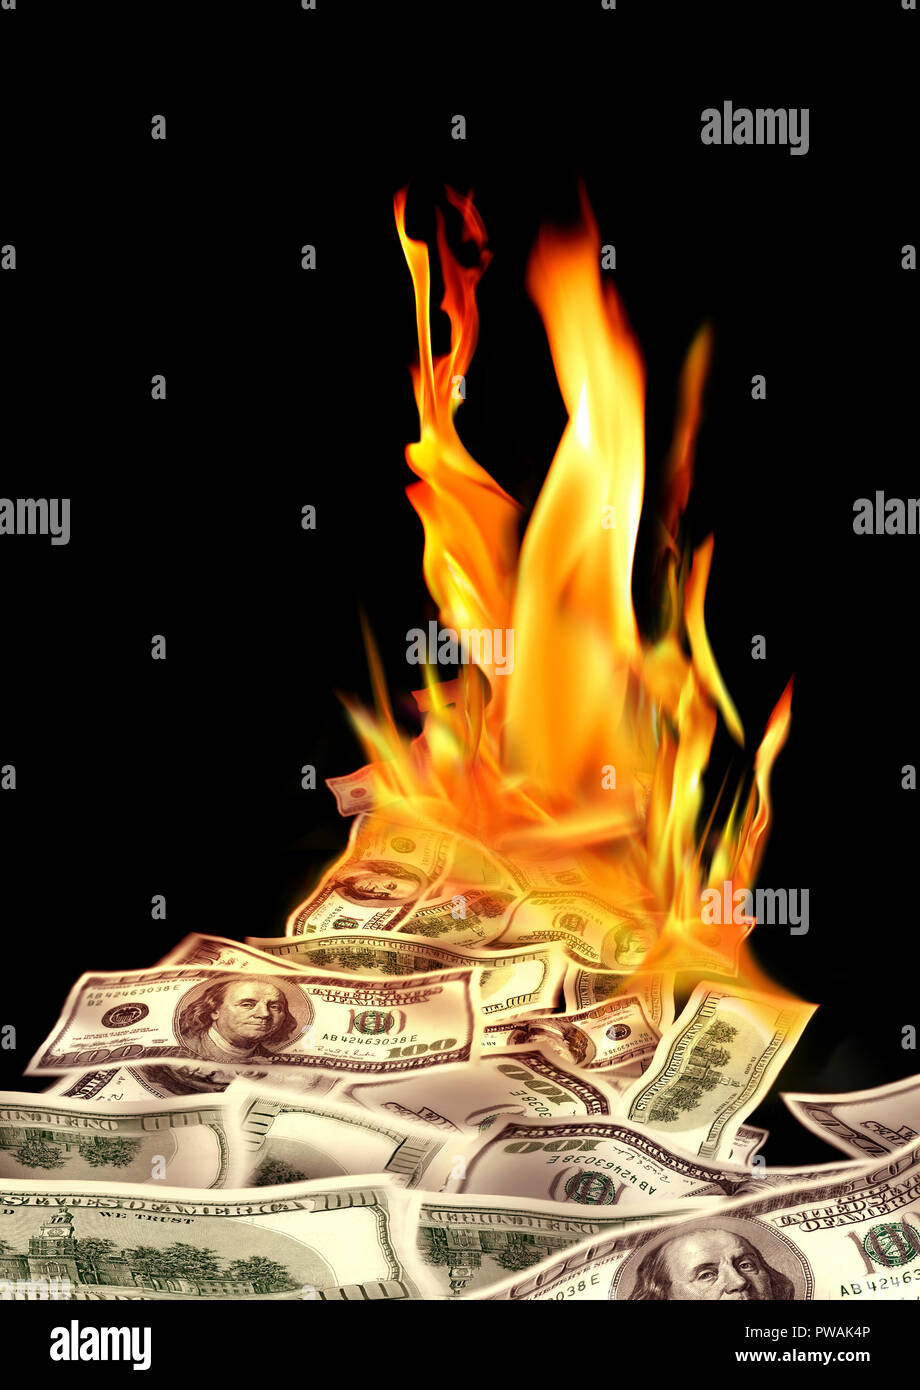 Conceptual finance image of burning pile of money, dollar bills ...